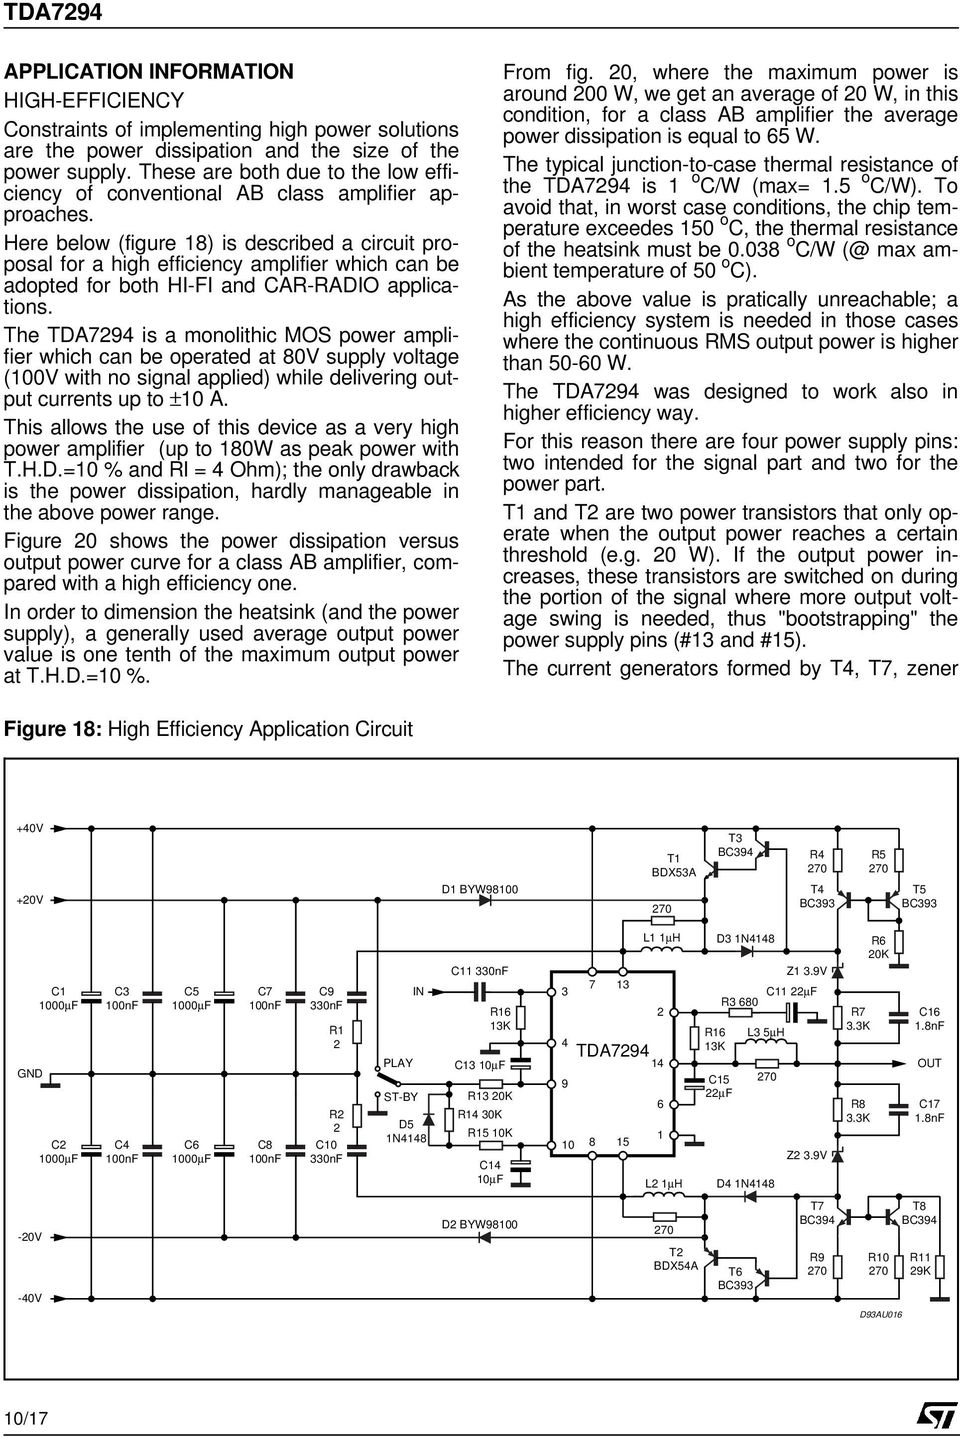 100v 100w Dmos Audio Amplifier With Mute St By Thermal Shutdown Simple Lead Acid Battery Charger Pb137 Regulator Circuit Here Below Figure 18 Is Described A Proposal For High Efficiency